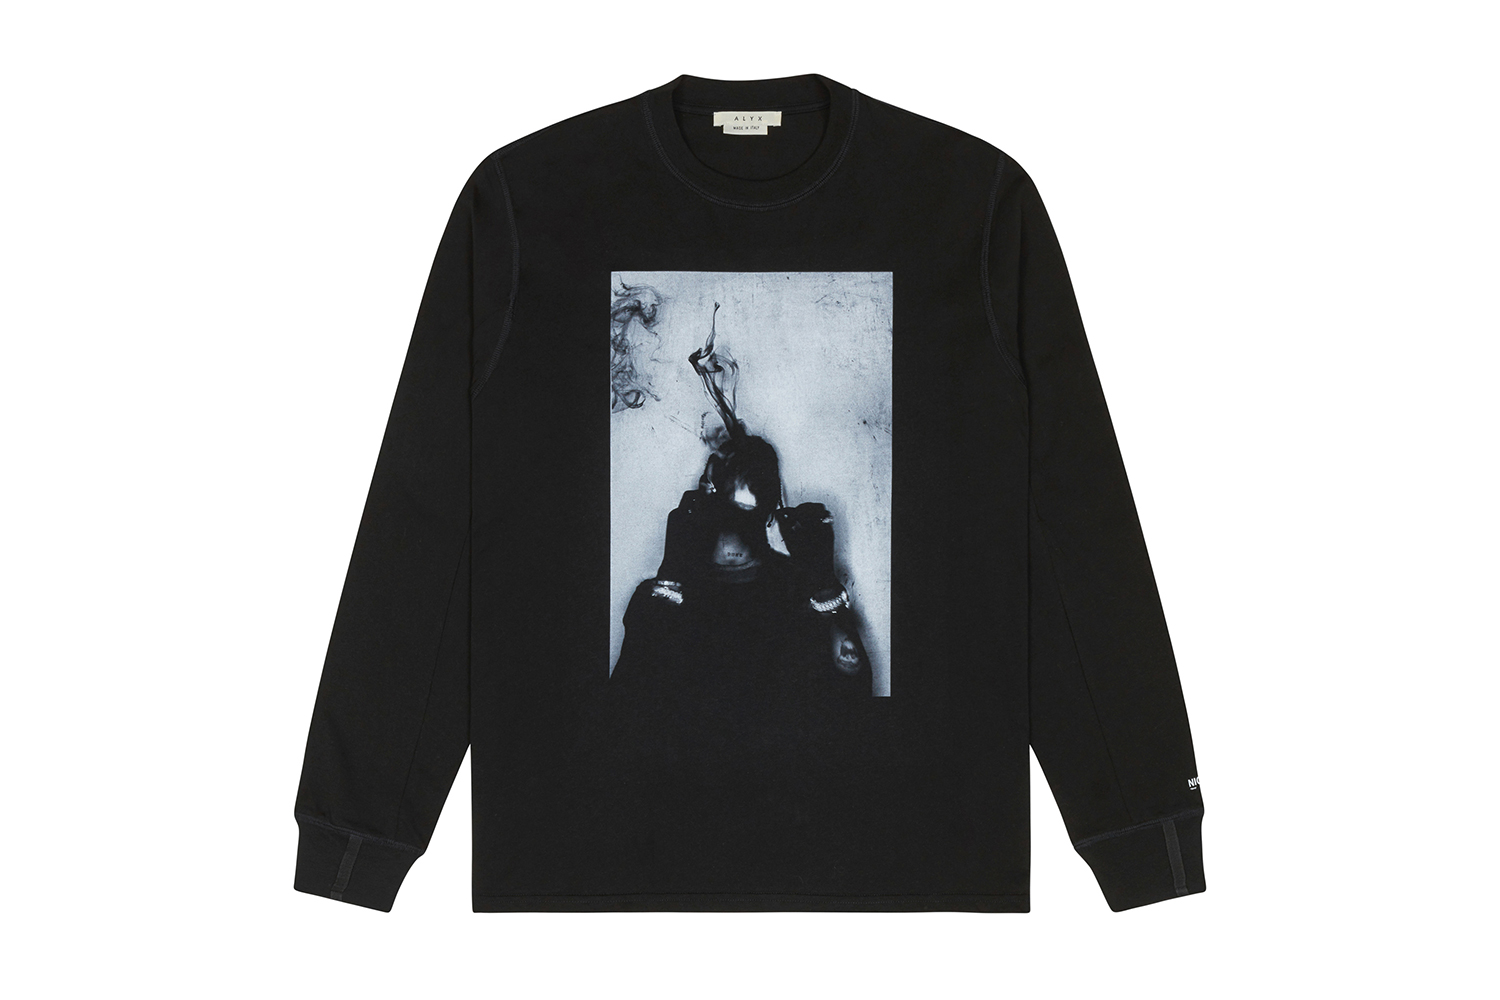 SHOWStudio x 1017 ALYX 9SM Capsule Collection